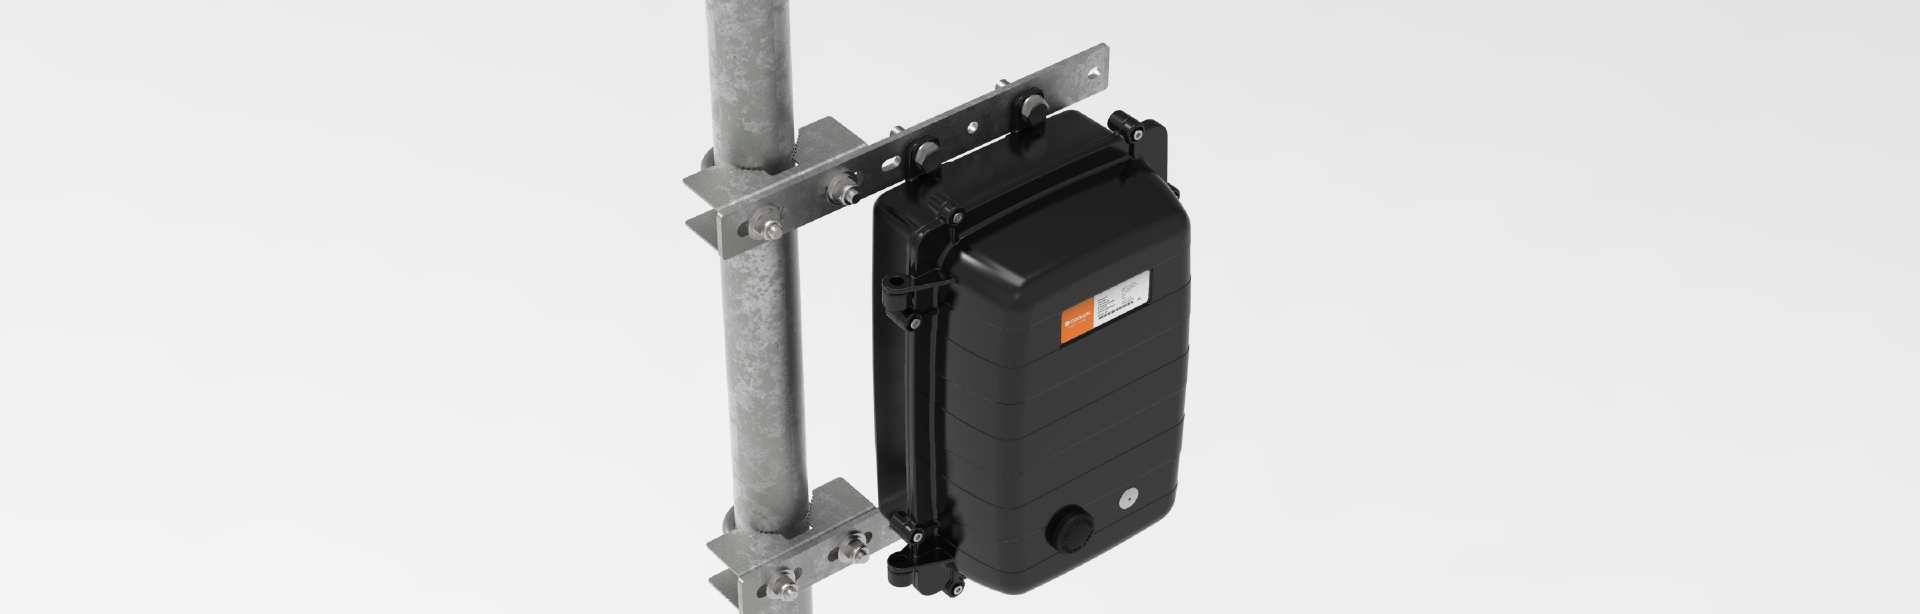 The U-Bolt pole mounting kit is specifically designed for mounting products using AL036 enclosure on a variety of poles that are widely used in the industry.